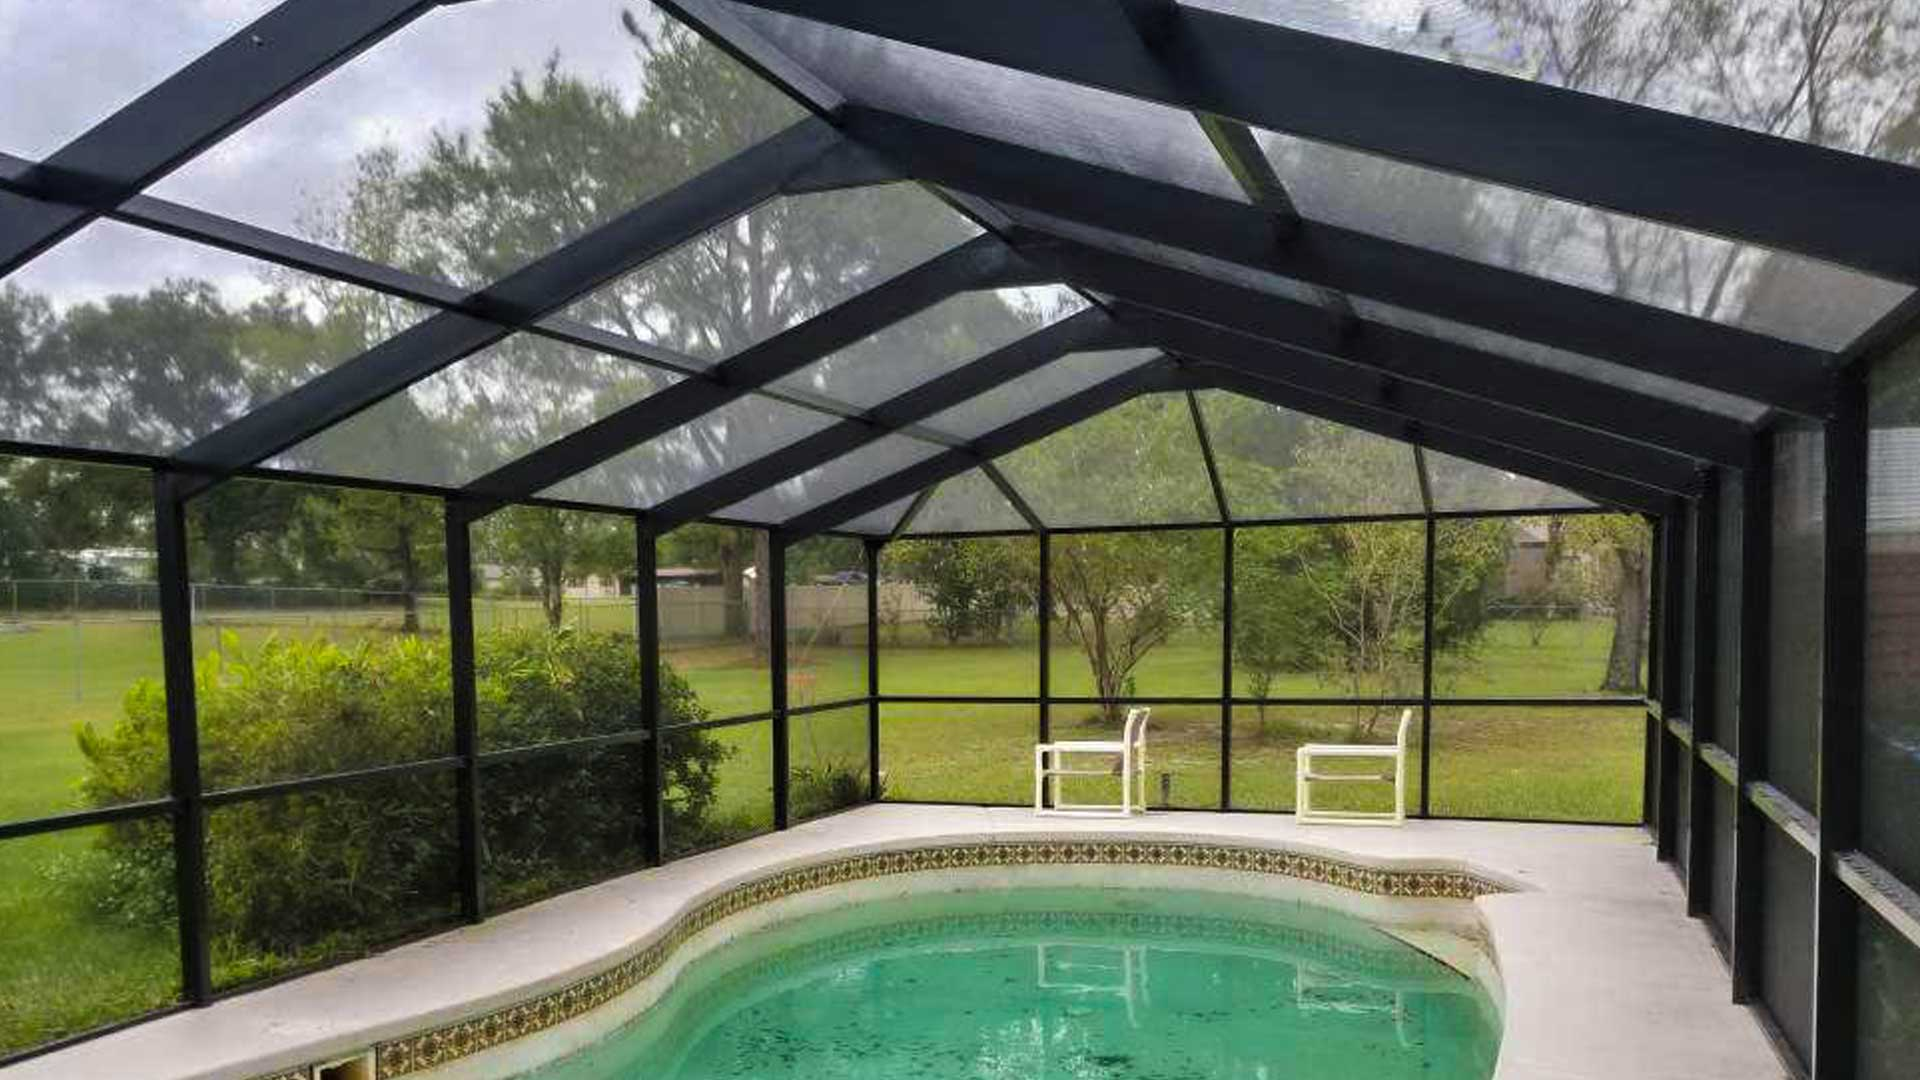 After our client's pool cage collapsed, we built a new aluminum pool cage at their home in Lakeland.